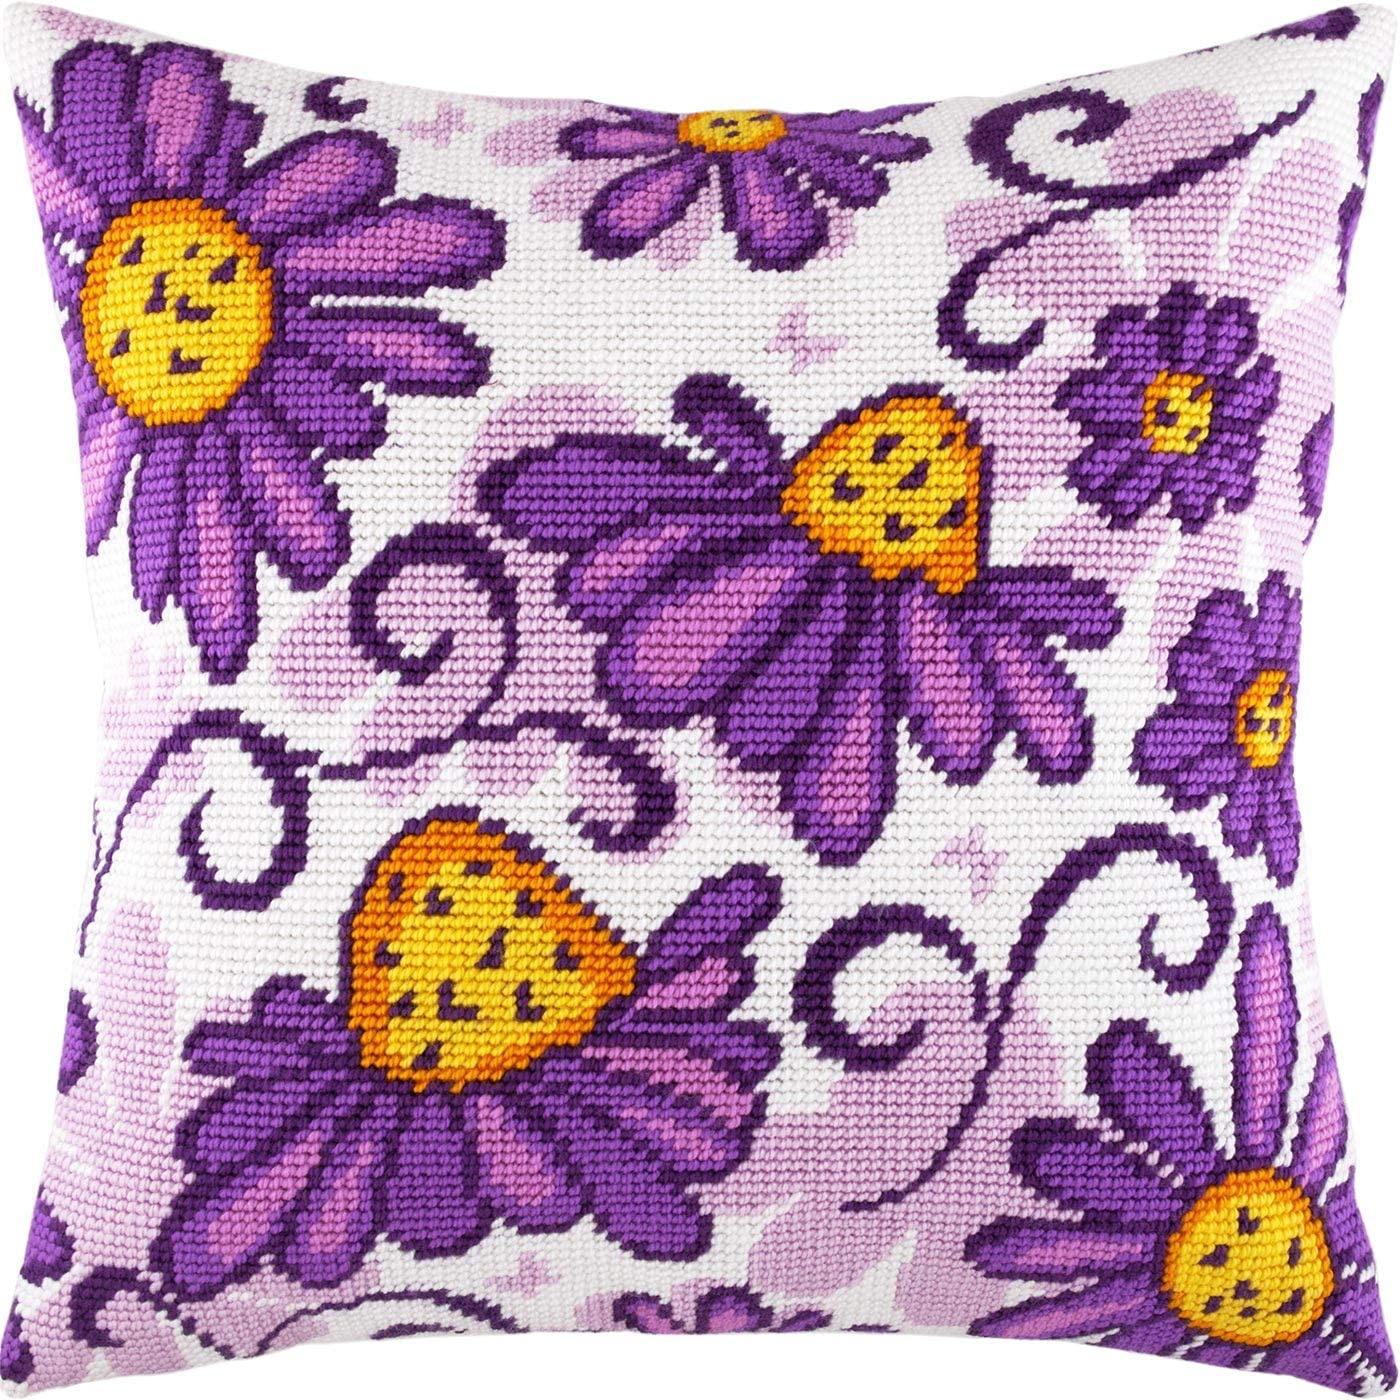 Throw Pillow 16/×16 Inches Needlepoint Kit Printed Tapestry Canvas European Quality Night Flowers